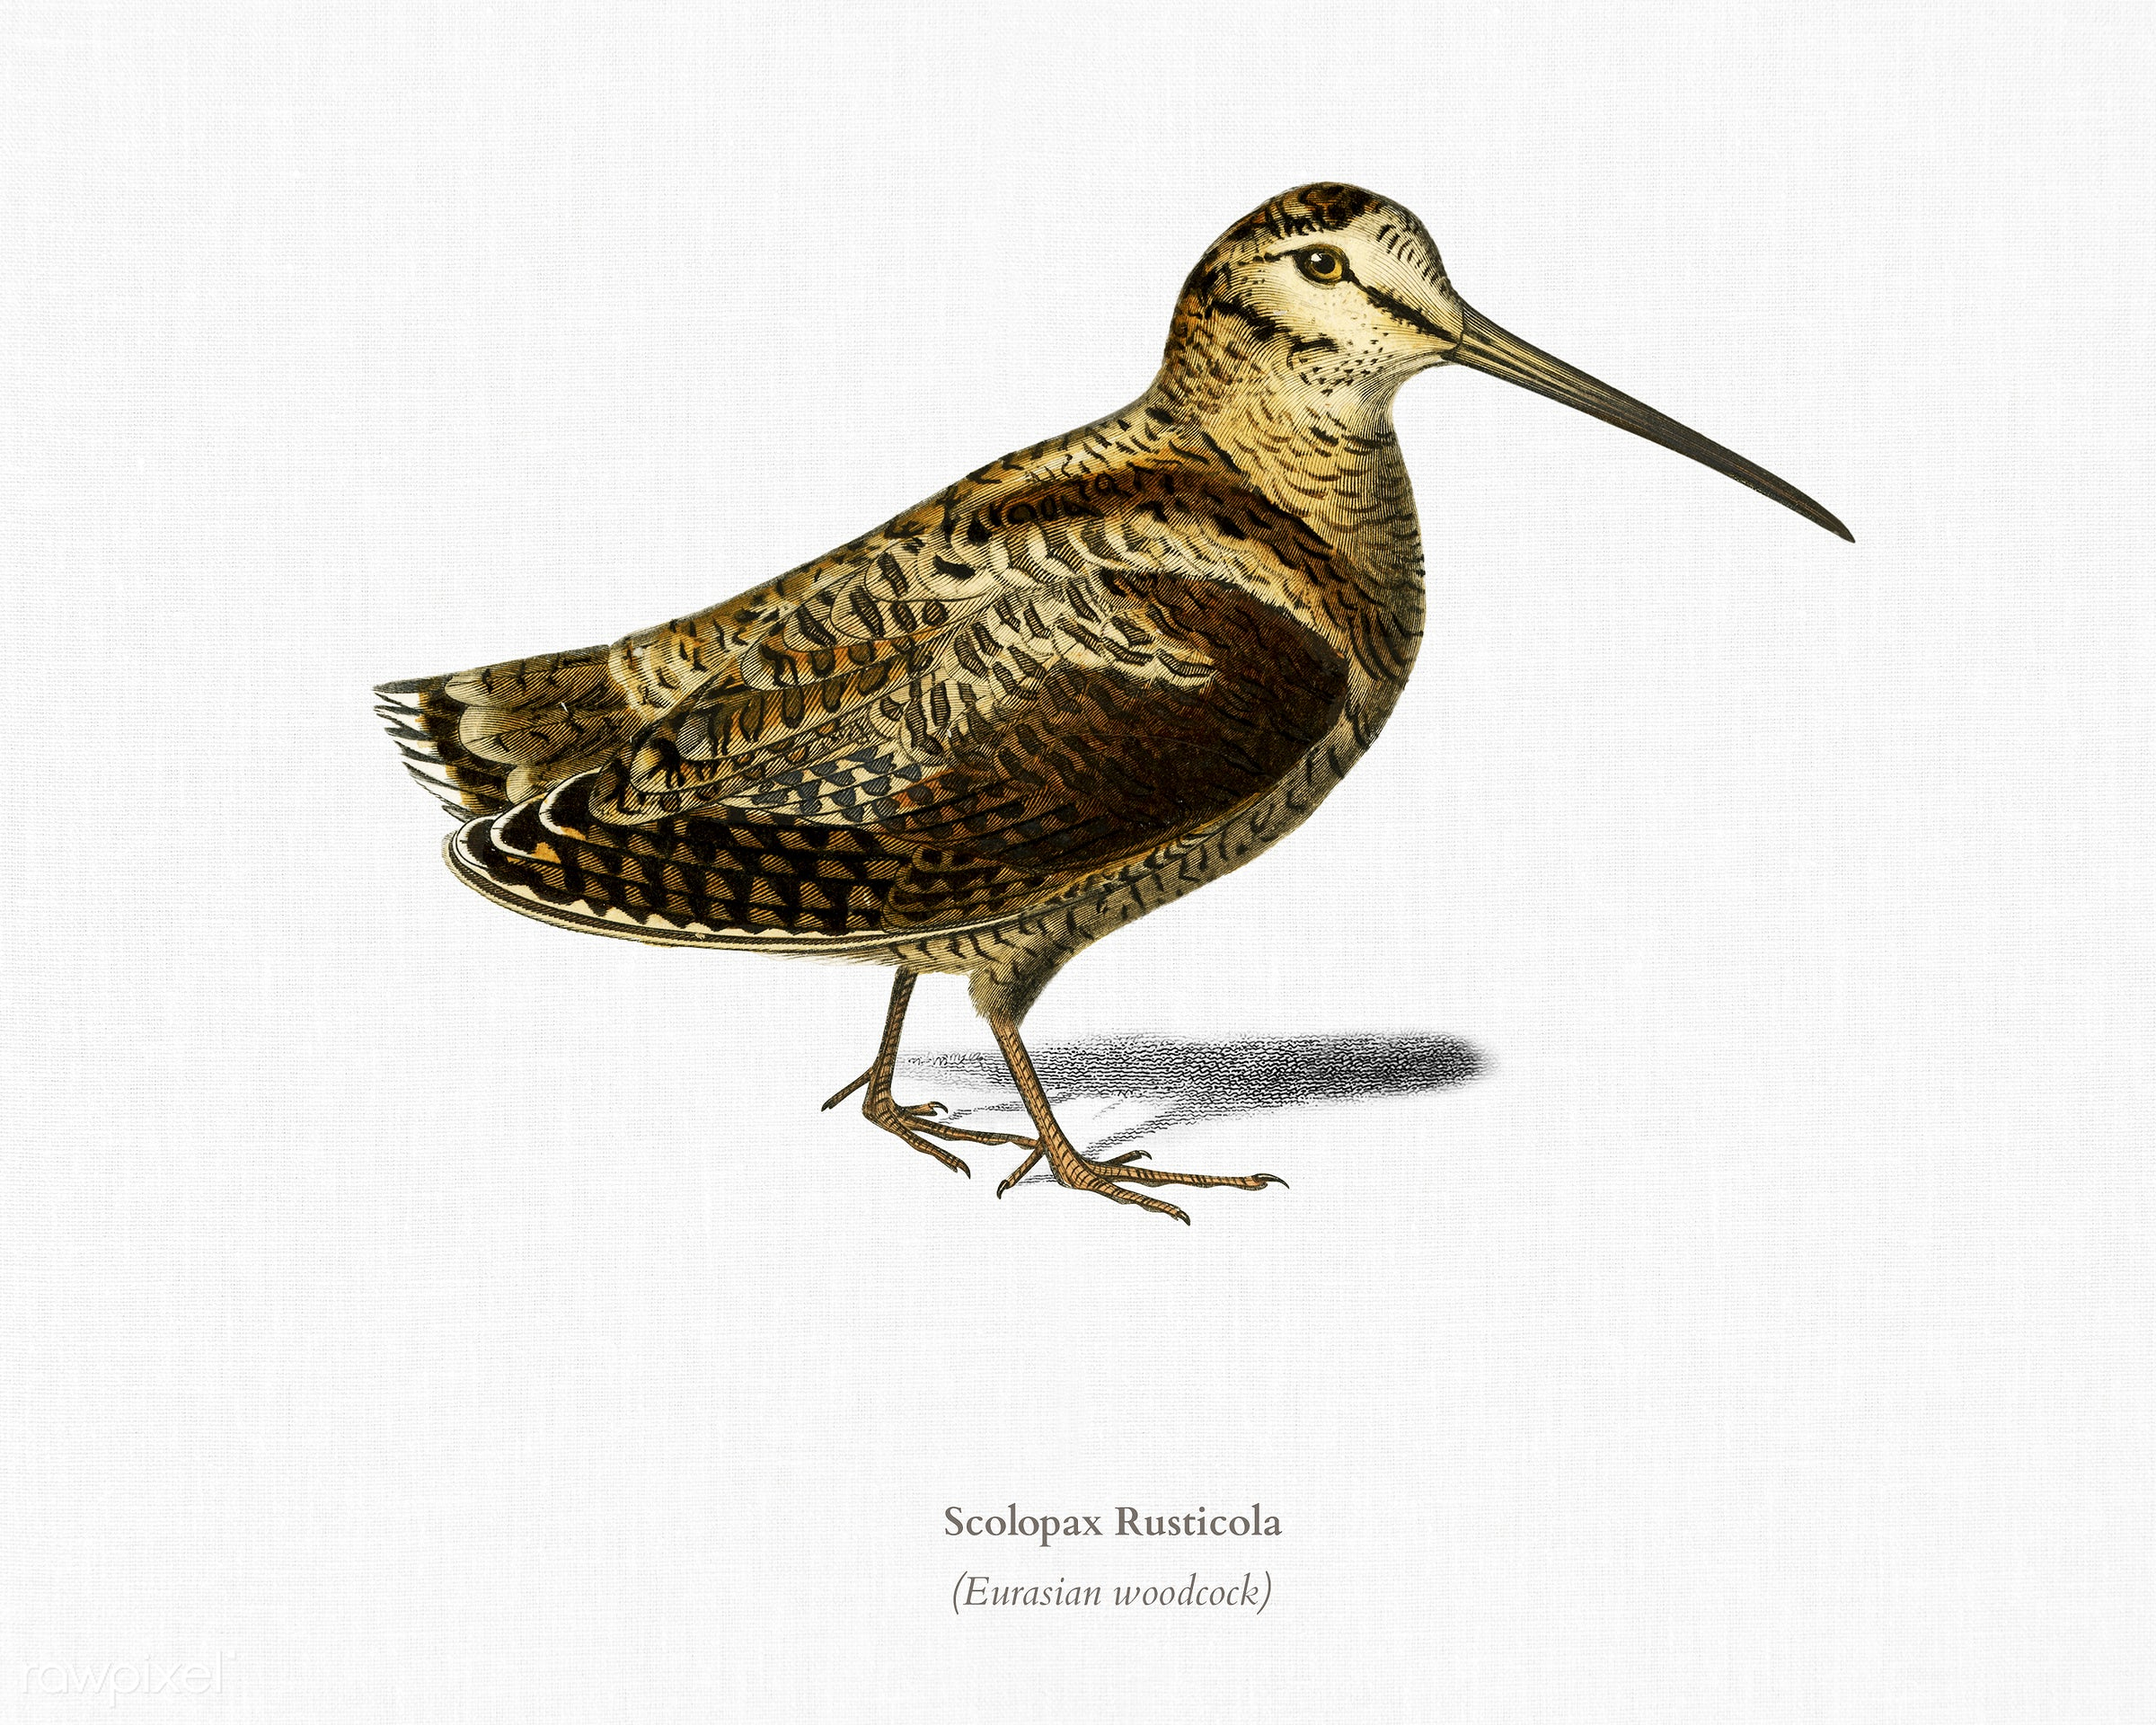 Eurasian Woodcock (Scolopax Rusticola) illustrated by Charles Dessalines D' Orbigny (1806-1876). Digitally enhanced from...